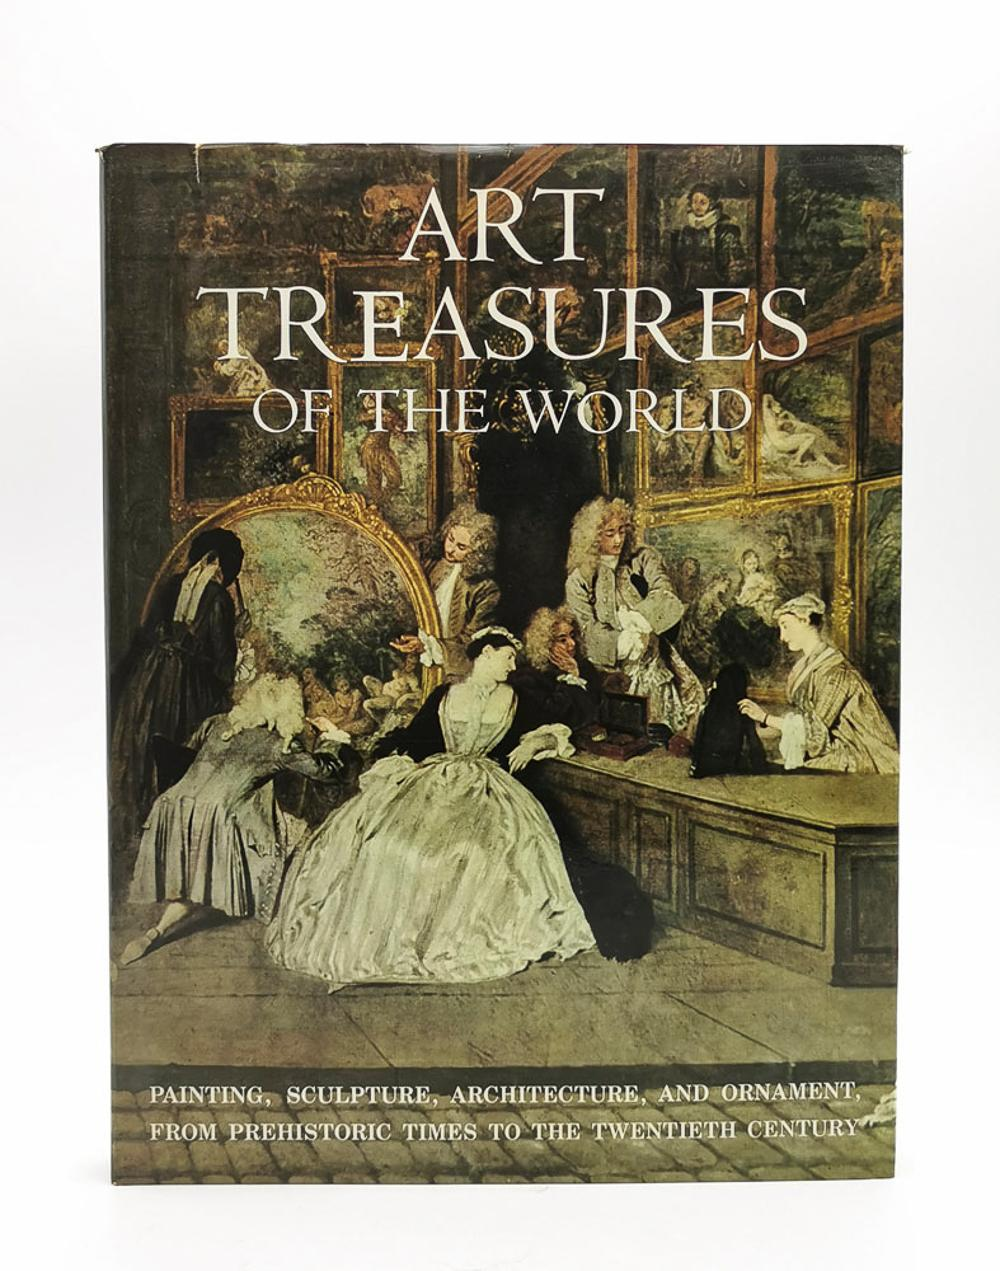 ART TREASURES OF THE WORLD, 1 vol. enc.